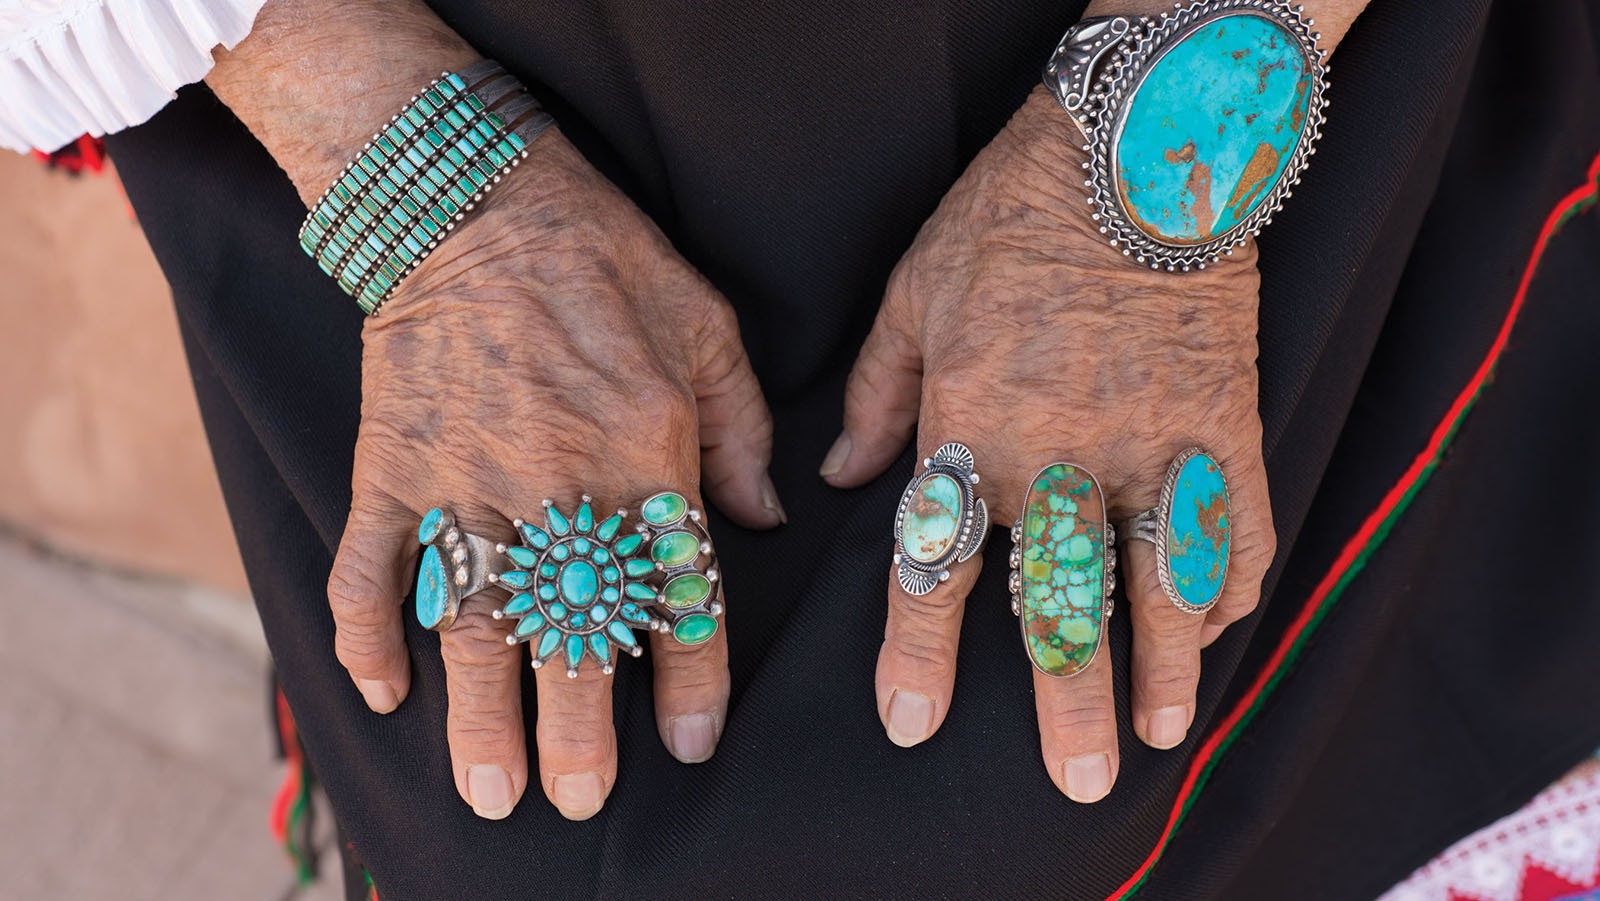 These pieces of jewelry date from the 1910s to the present and show turquoise at its best. Photo by Kitty Leaken